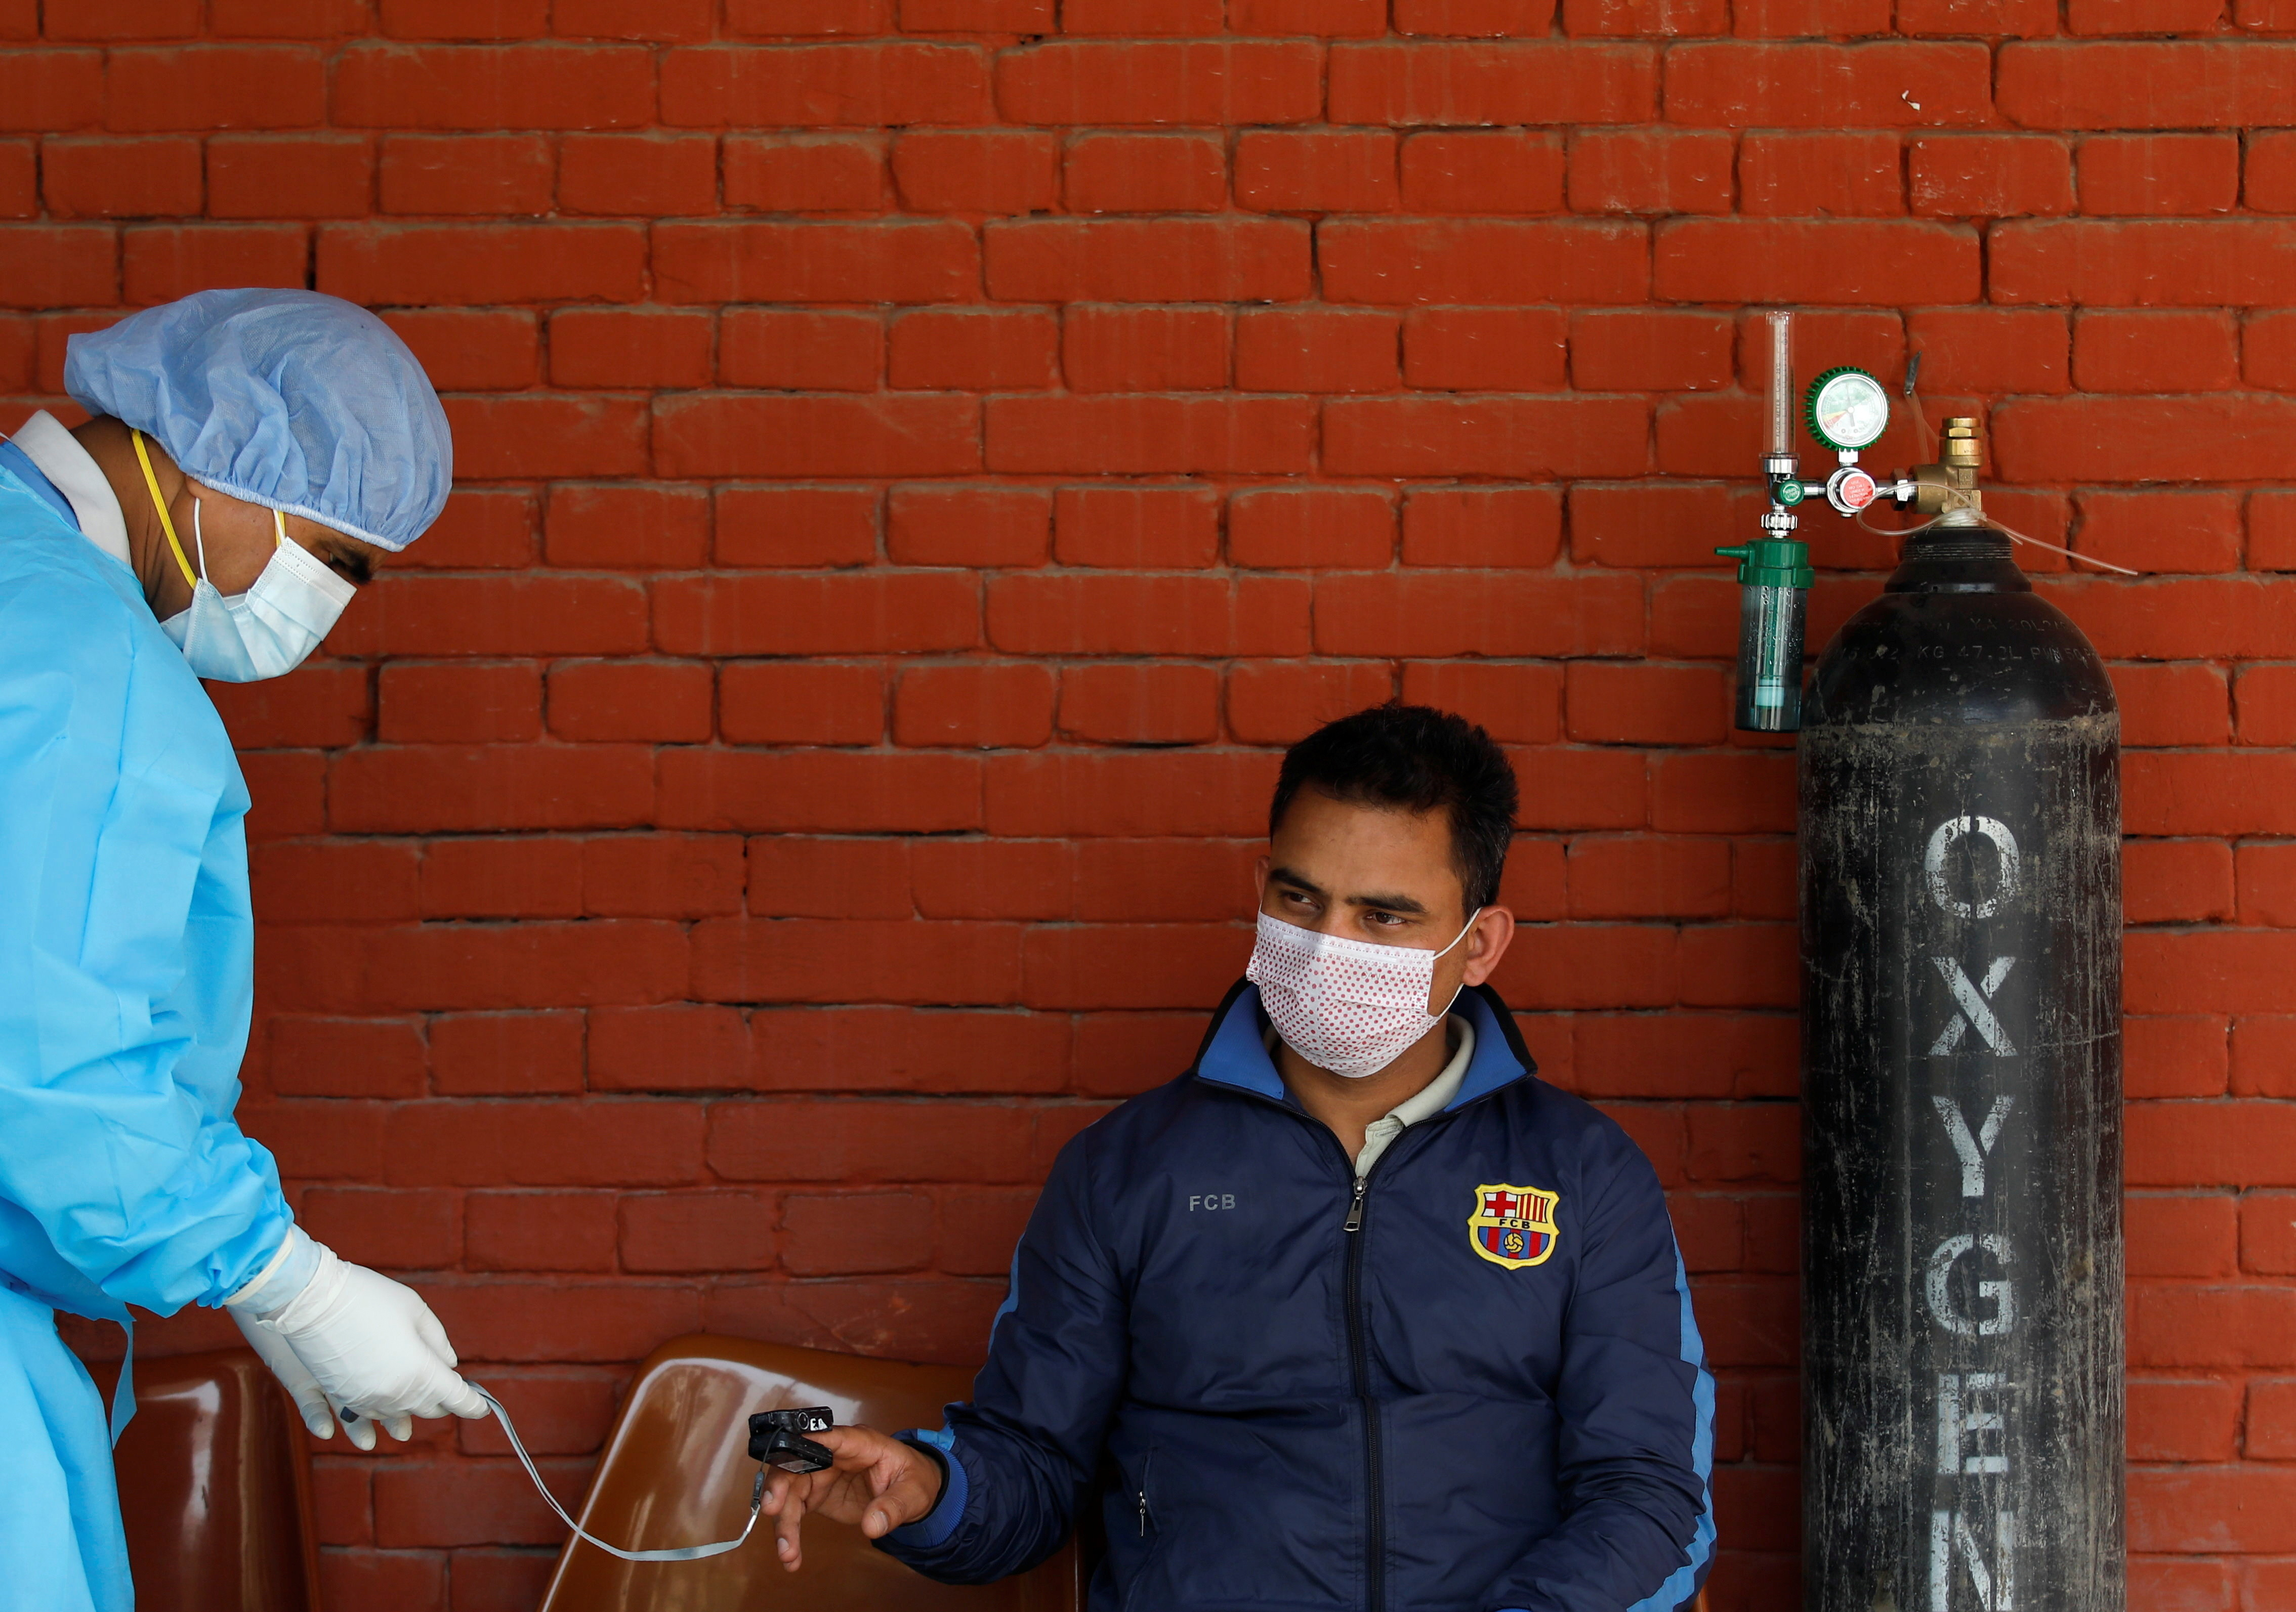 A doctor checks the oxygen level of a man suffering from coronavirus disease (COVID-19) as he sits outside an emergency room waiting to get admitted amid the lack of free beds at the hospital as the major second coronavirus wave surges in Kathmandu, Nepal April 30, 2021. REUTERS/Navesh Chitrakar - RC256N9NXBX9